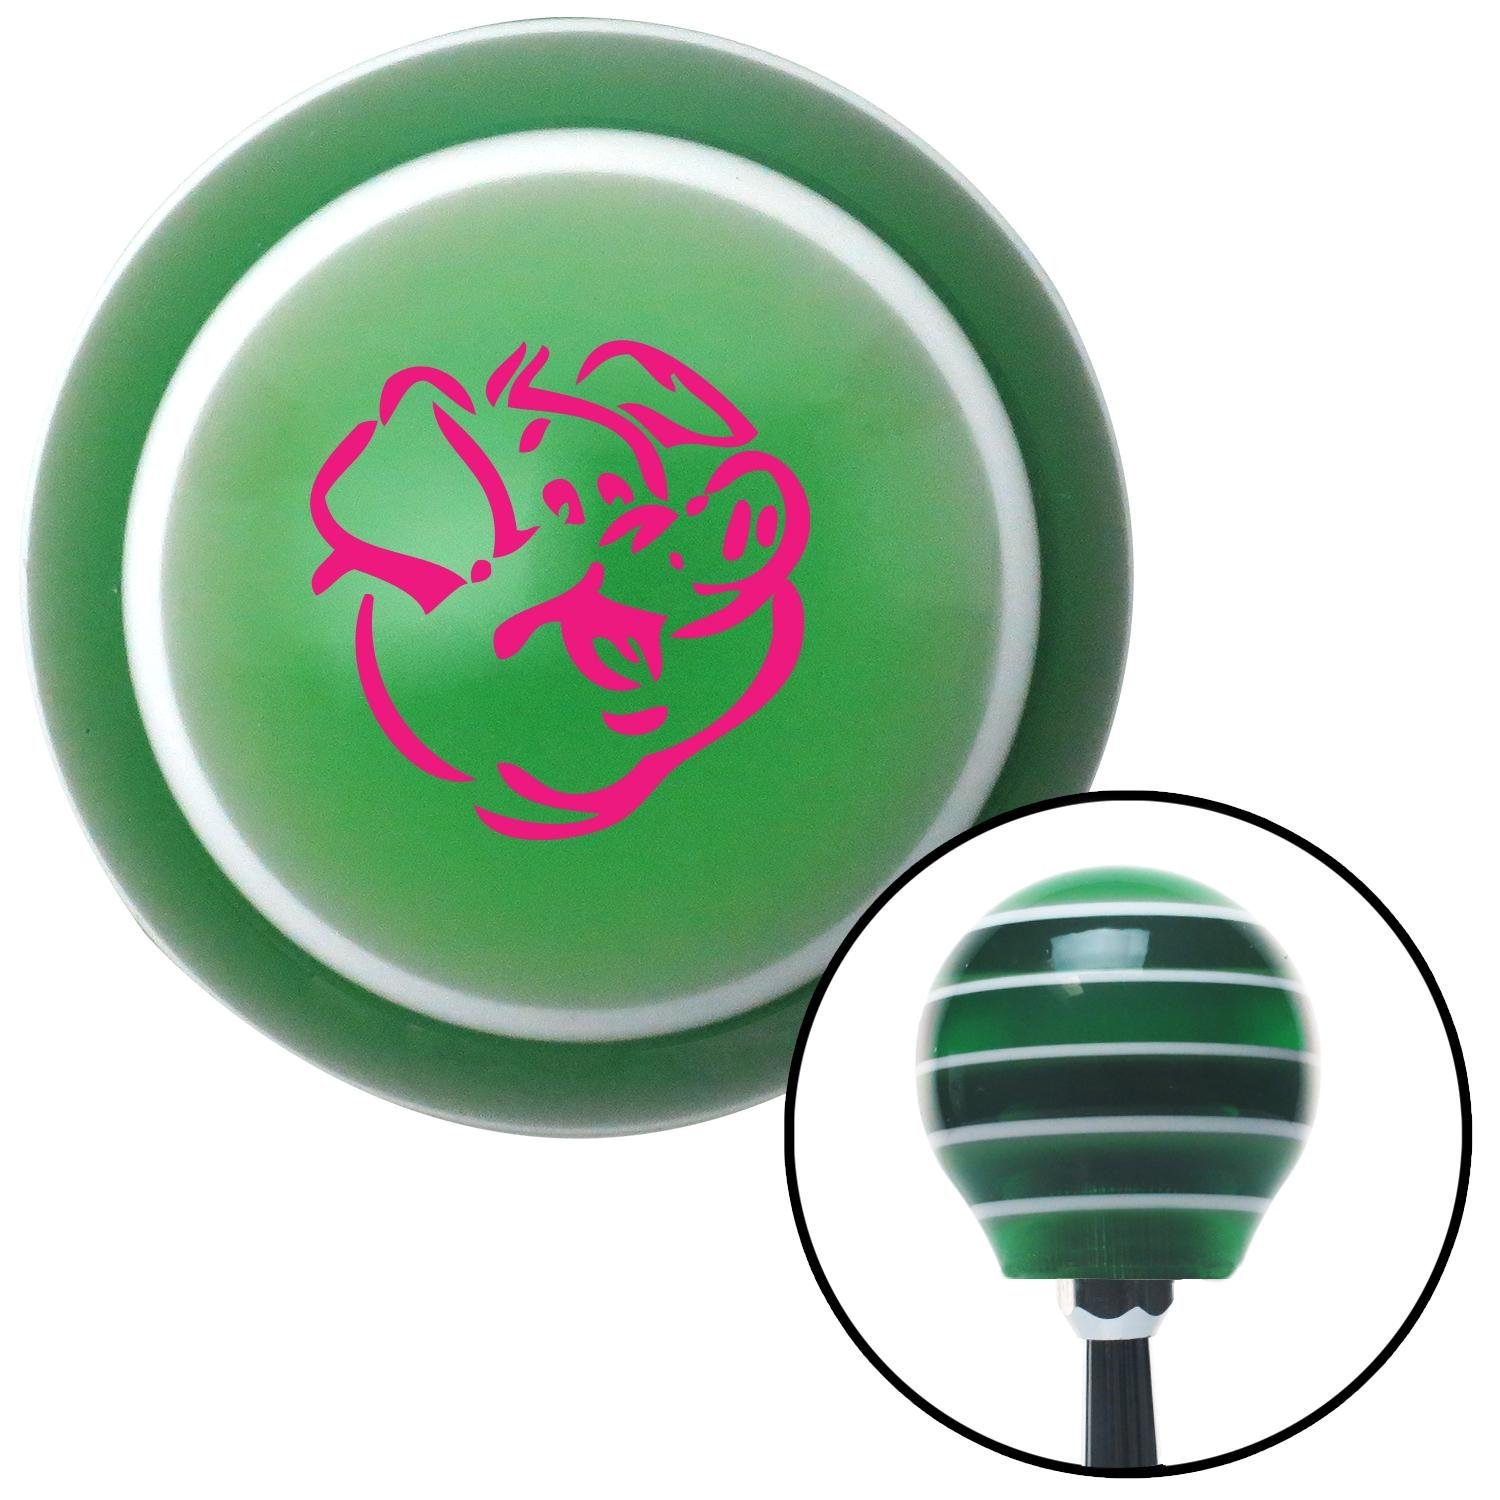 Pink Pig American Shifter 121098 Green Stripe Shift Knob with M16 x 1.5 Insert